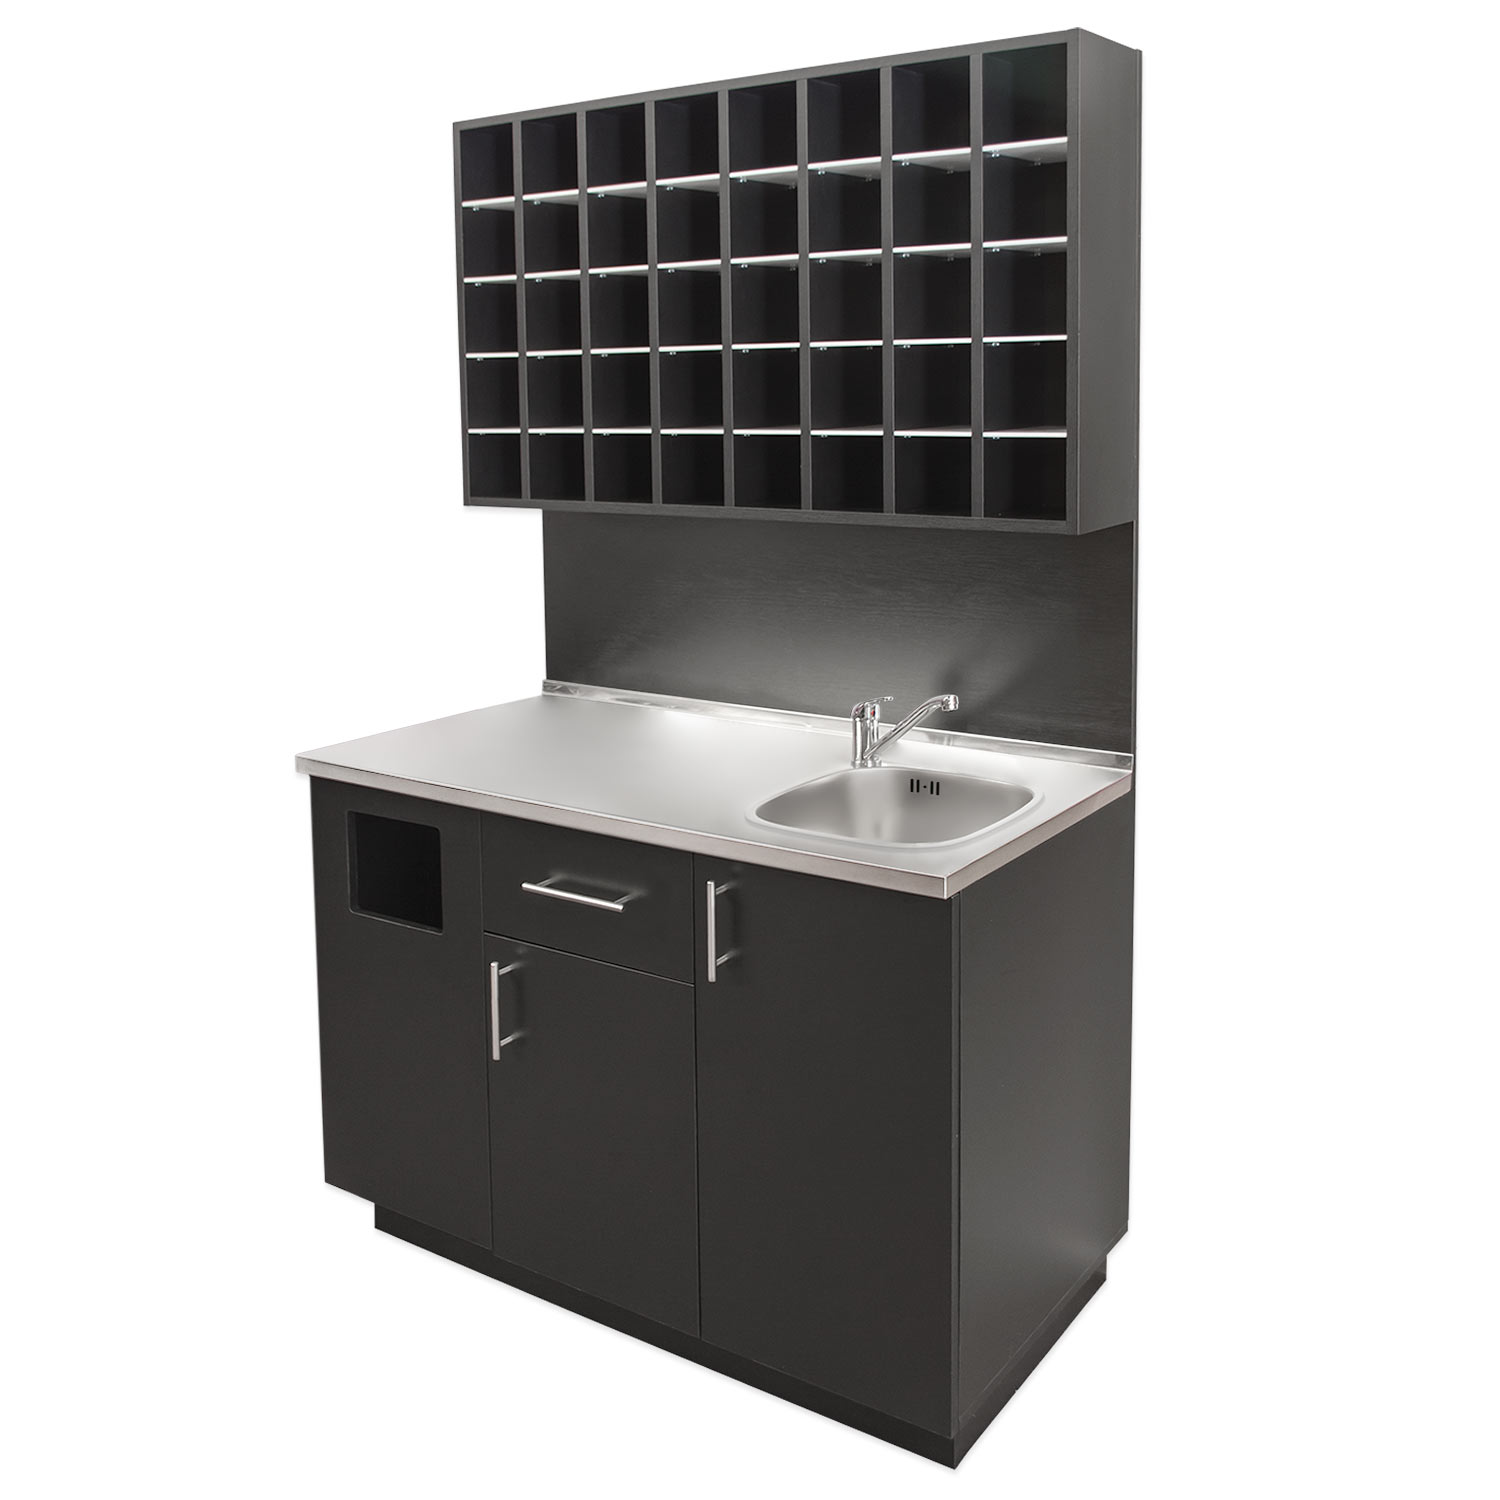 4' Color Mixing Station with Sink and Stainless Steel Counter  main product image